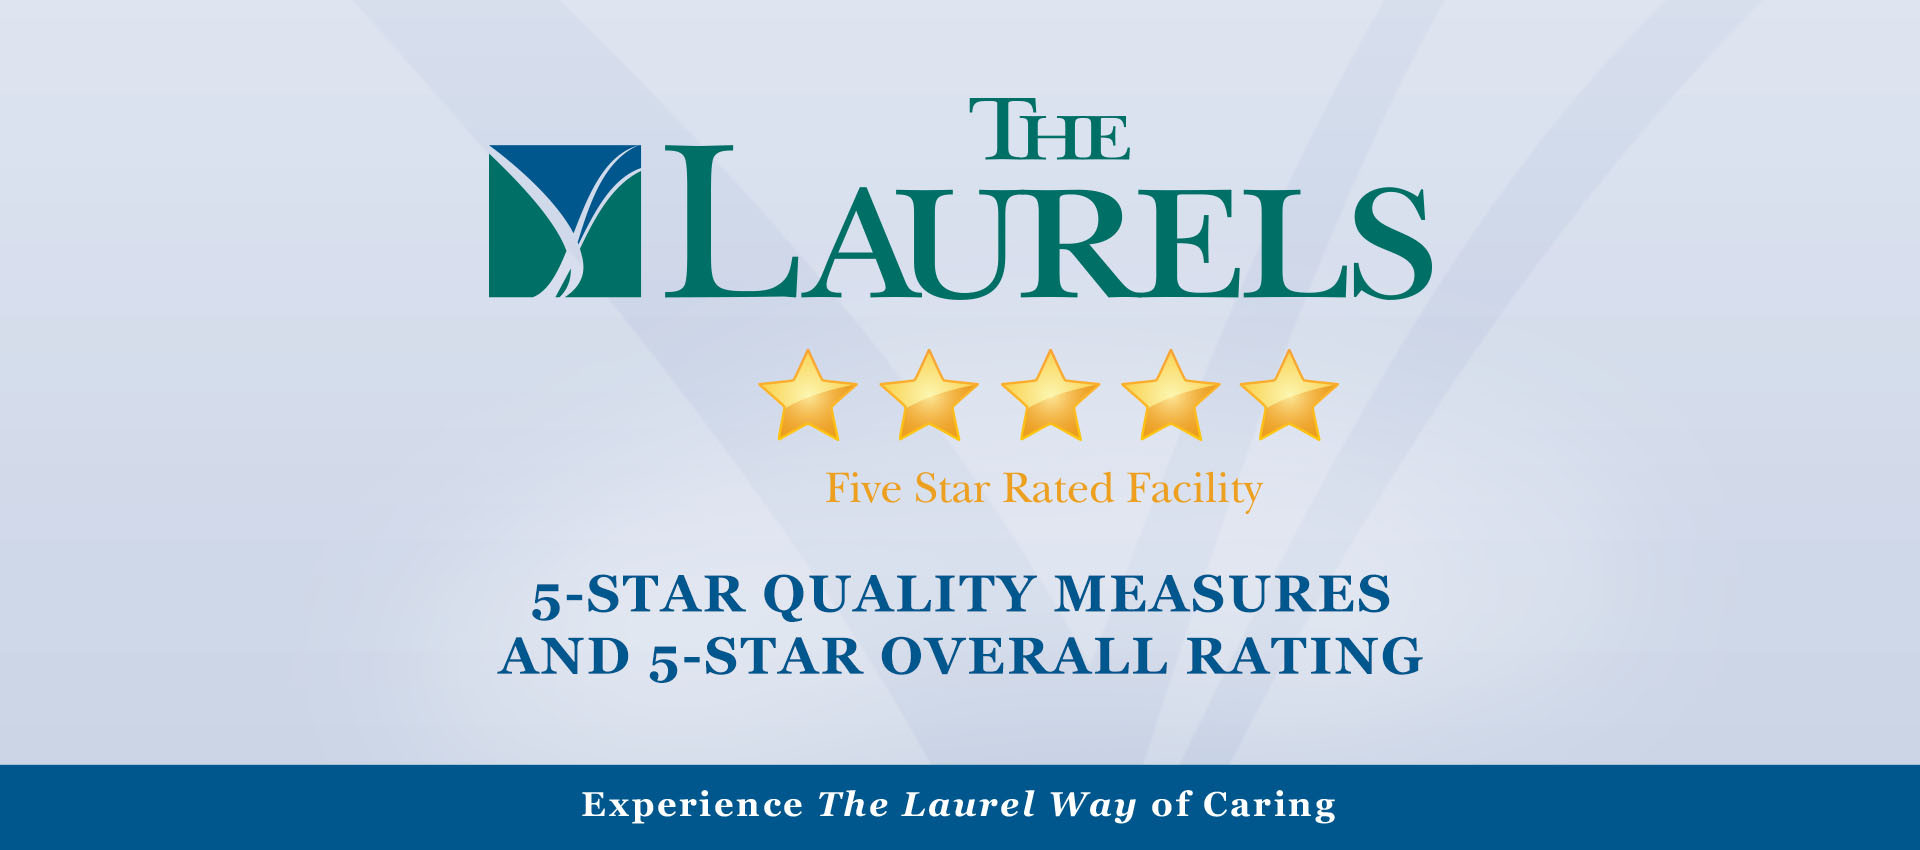 5 Star Quality Measures + Overall Rating